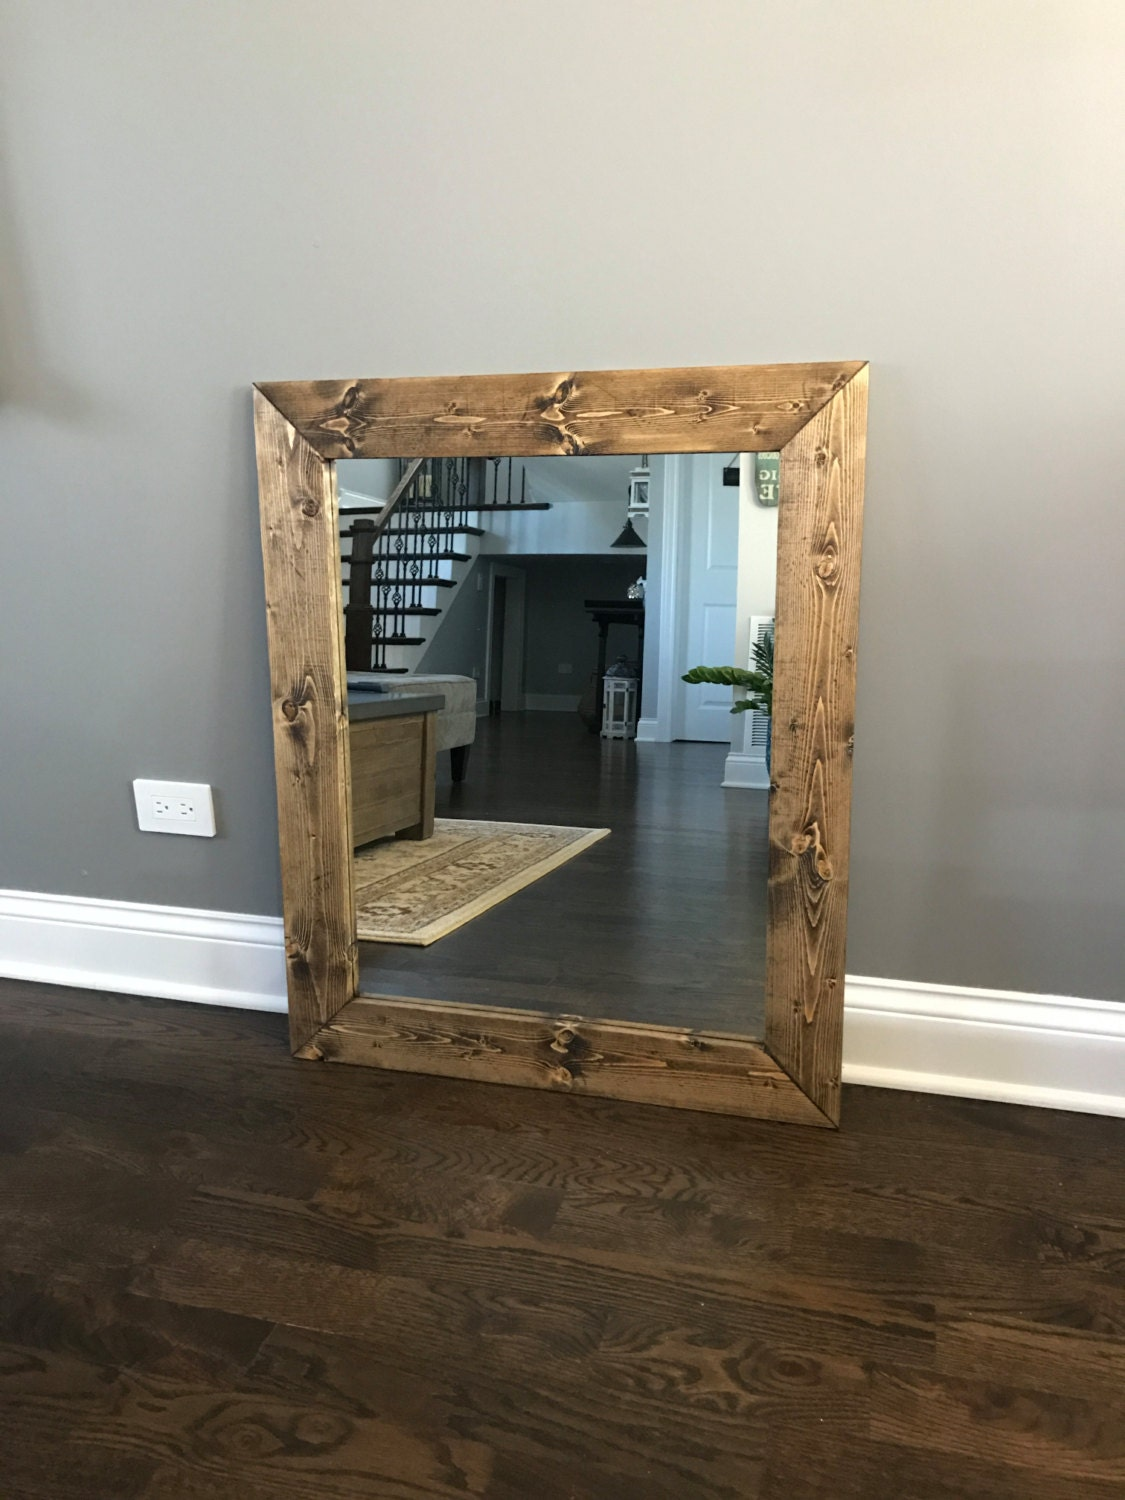 mirror wood frame mirror rustic wood mirror bathroom mirror wall mirror vanity mirror small mirror large mirror